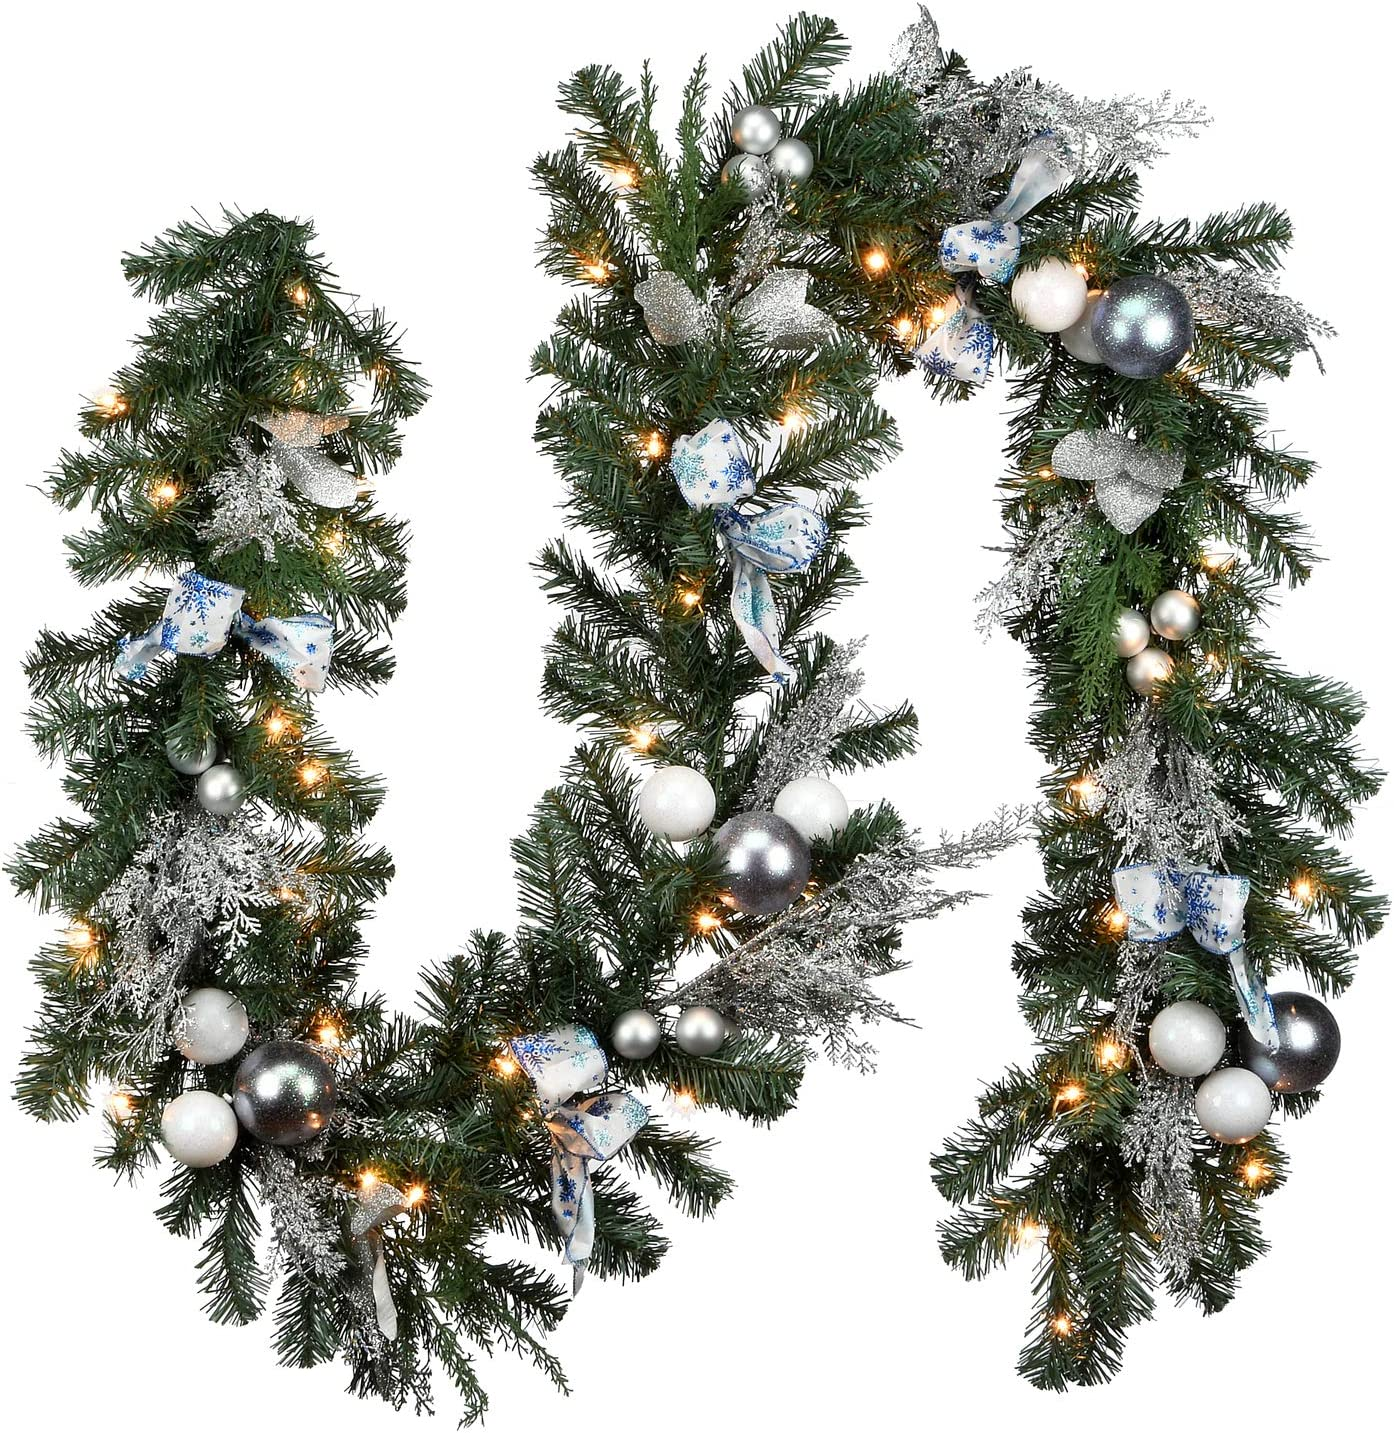 National National uniform free shipping Tree Company 9 xx14 50 Clear Collectio ft. Quantity limited Decorative